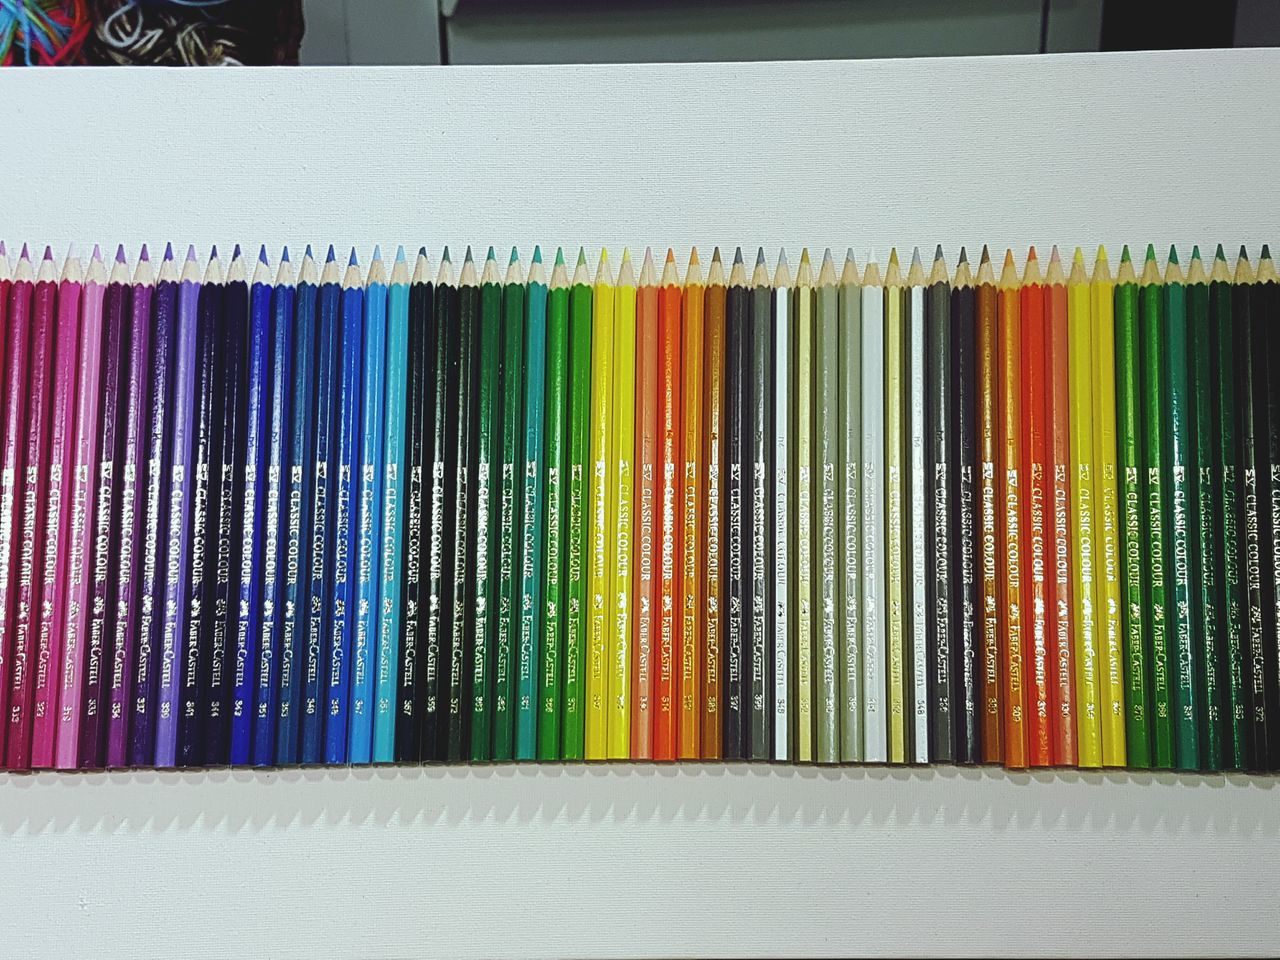 High Angle View Of Colored Pencils Arranged On Table